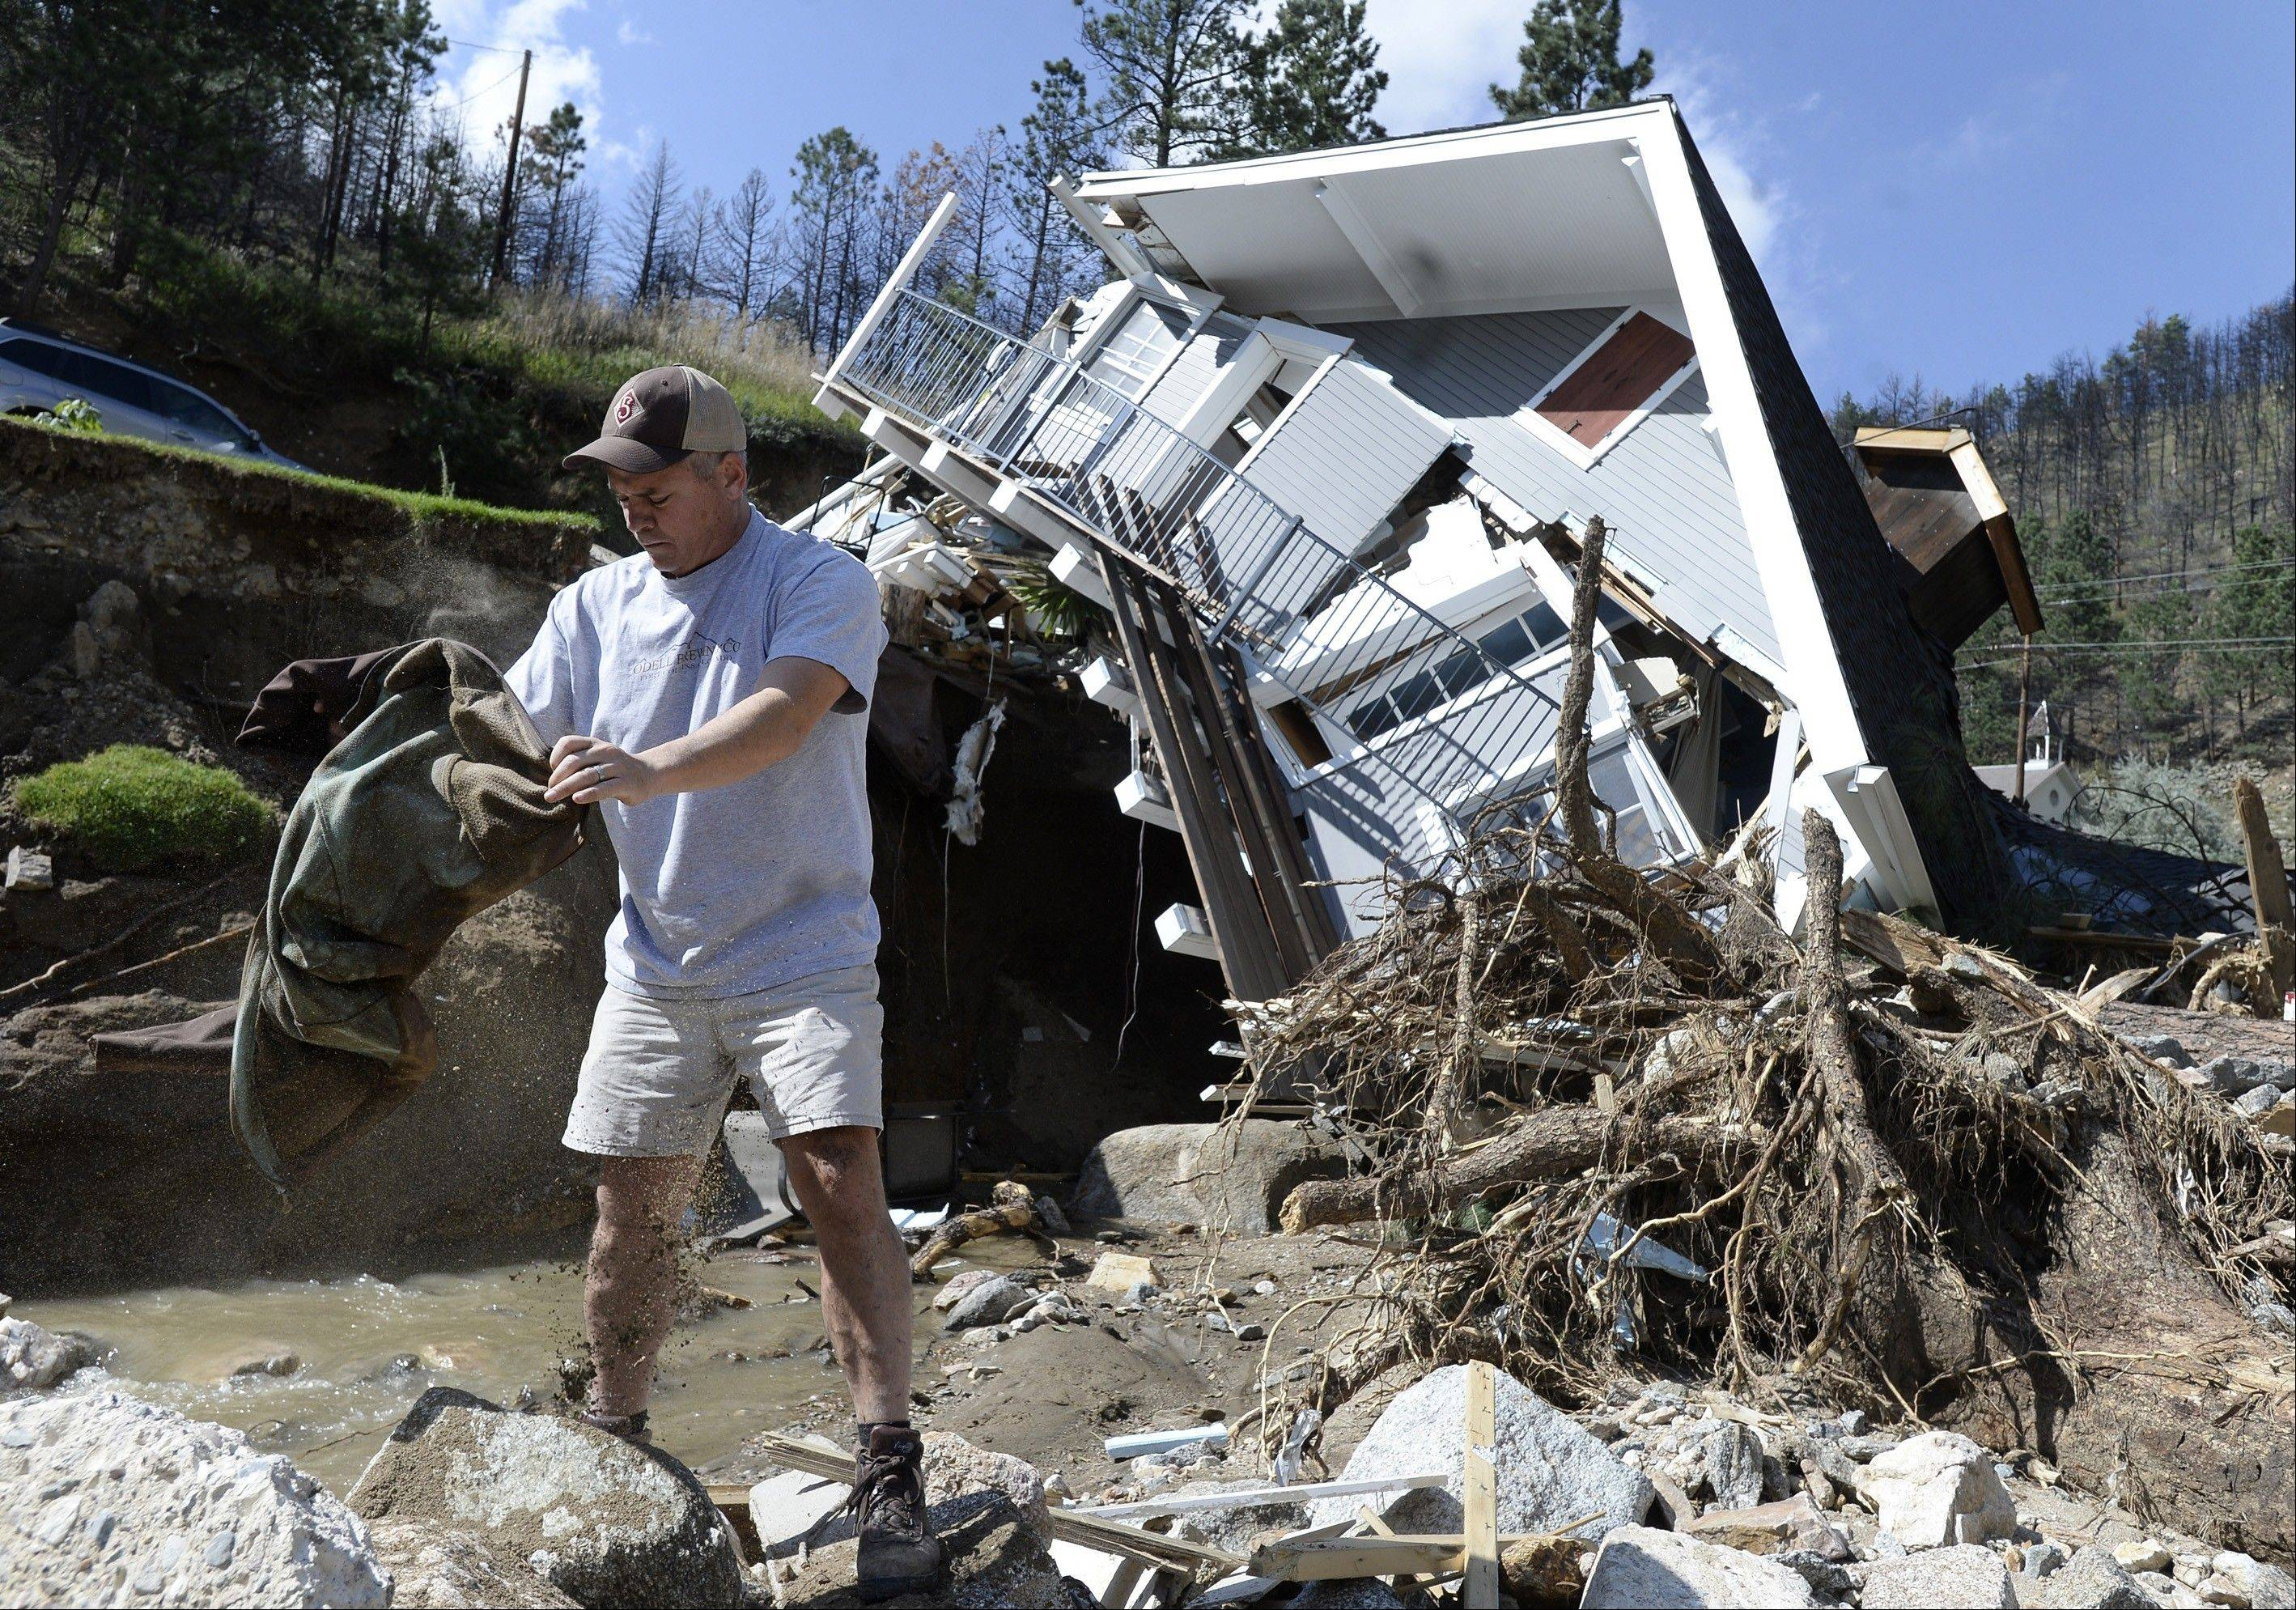 Sean McCroskey pulls his wife Meg's jacket out of the debris in the river in front of their destroyed home on Gold Run Road in Boulder County, Colo. State highway crews and National Guard troops worked Sunday.